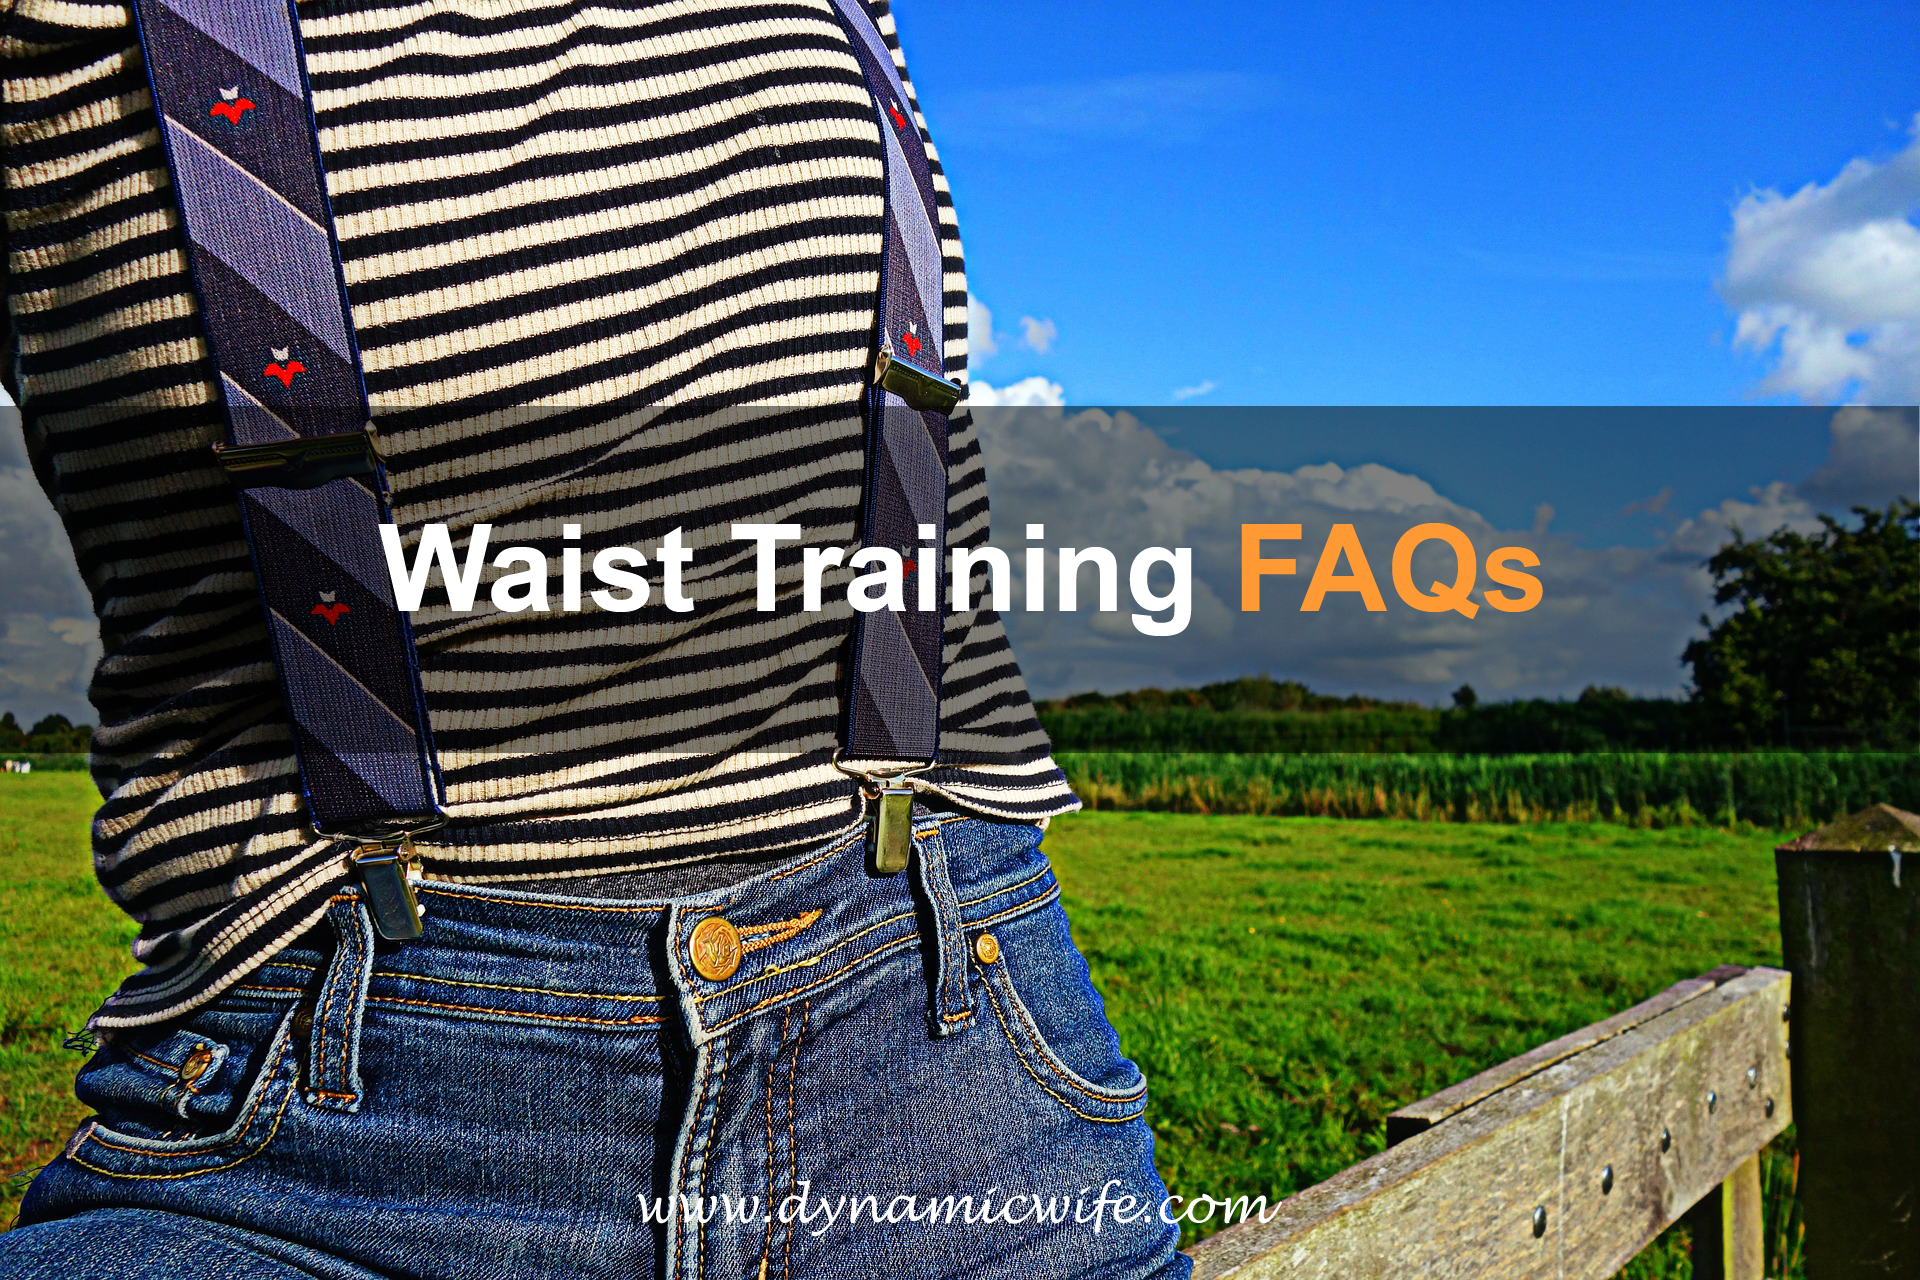 Waist Training FAQs